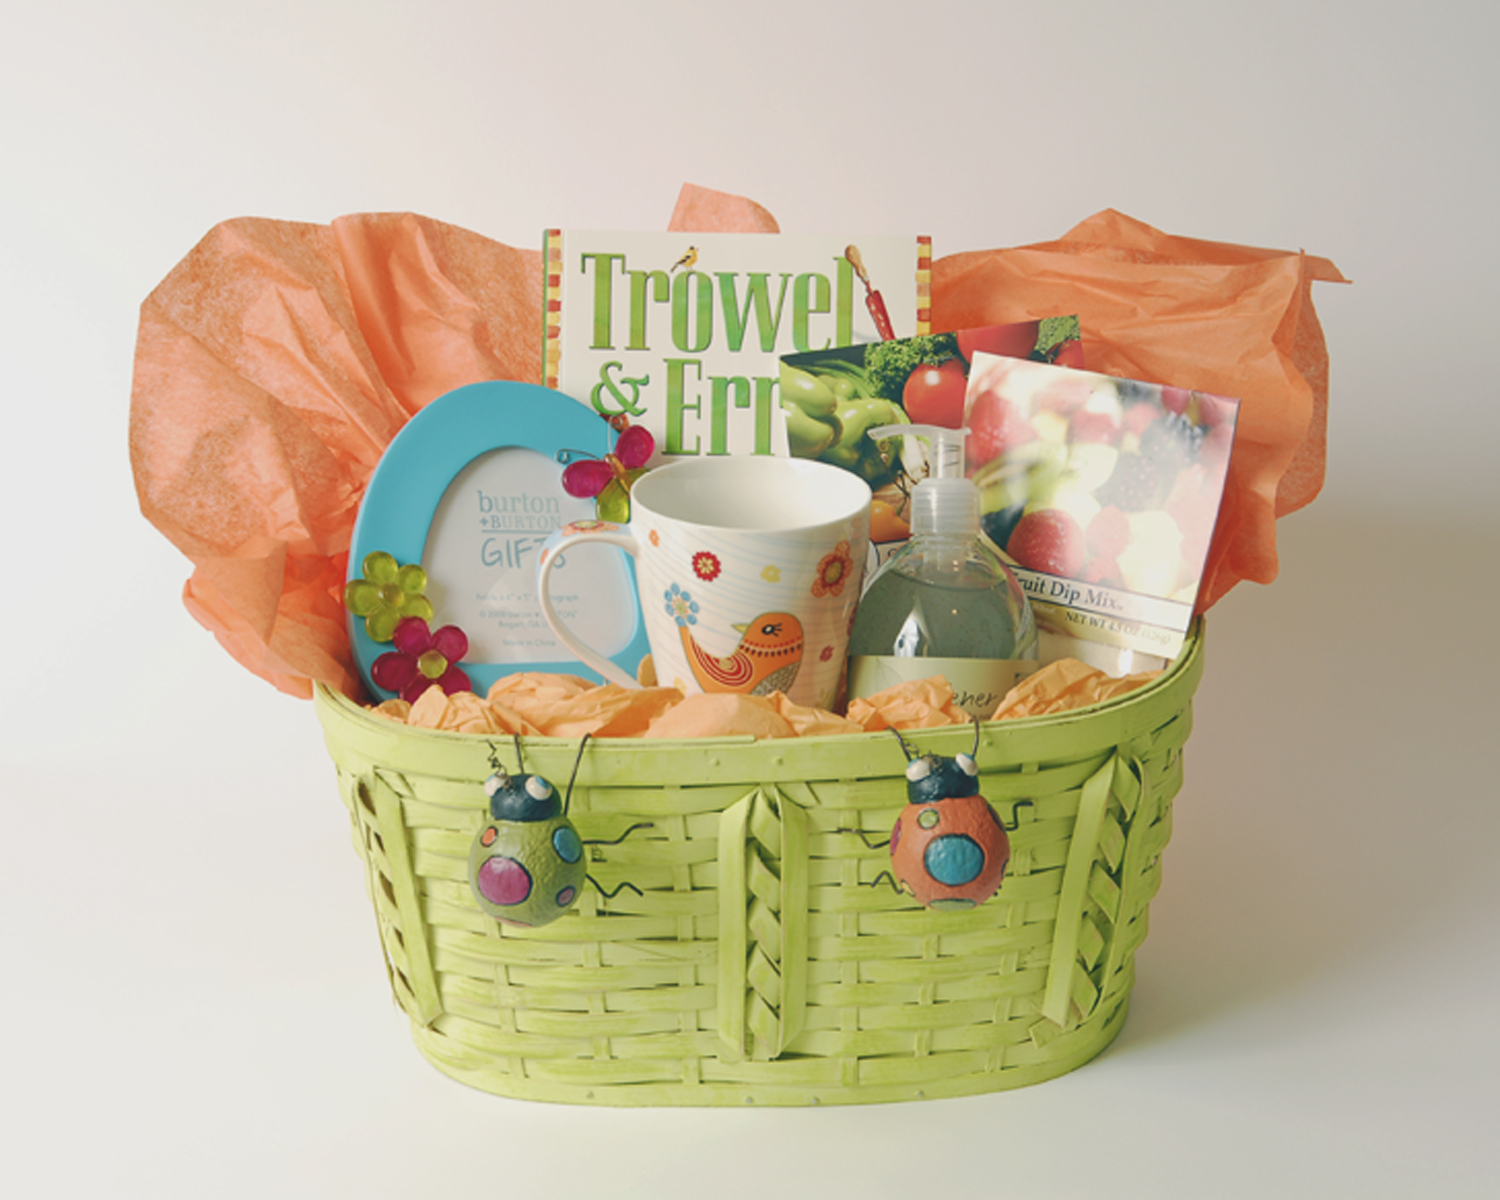 Thoughtful Presence: 5 Great Gift Basket Ideas For Women